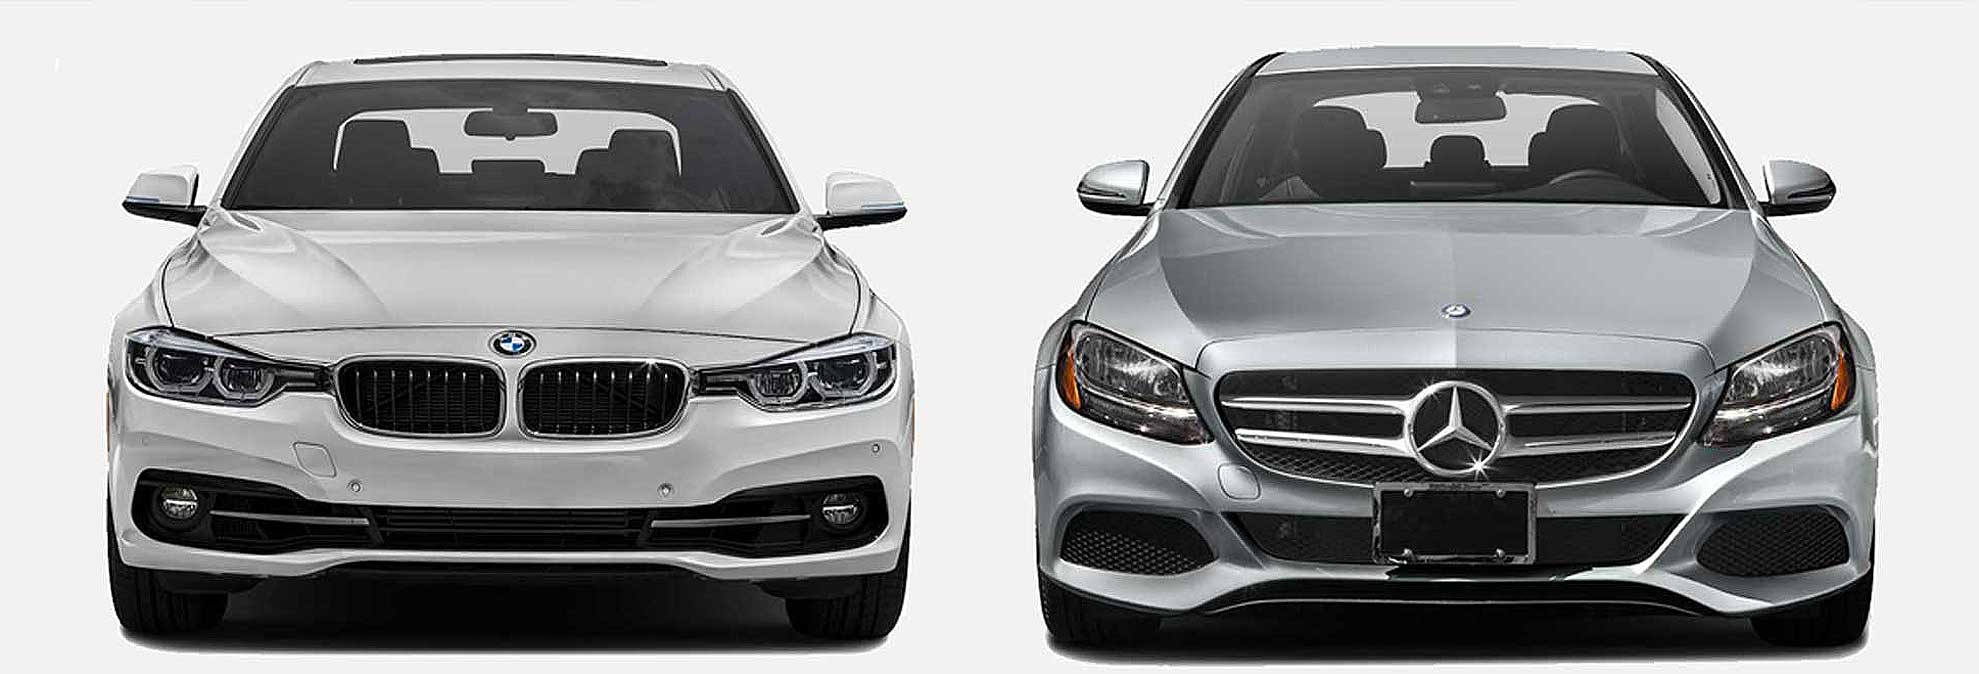 BMW 3 Series Vs Mercedes-Benz C-Class Sports Sedans